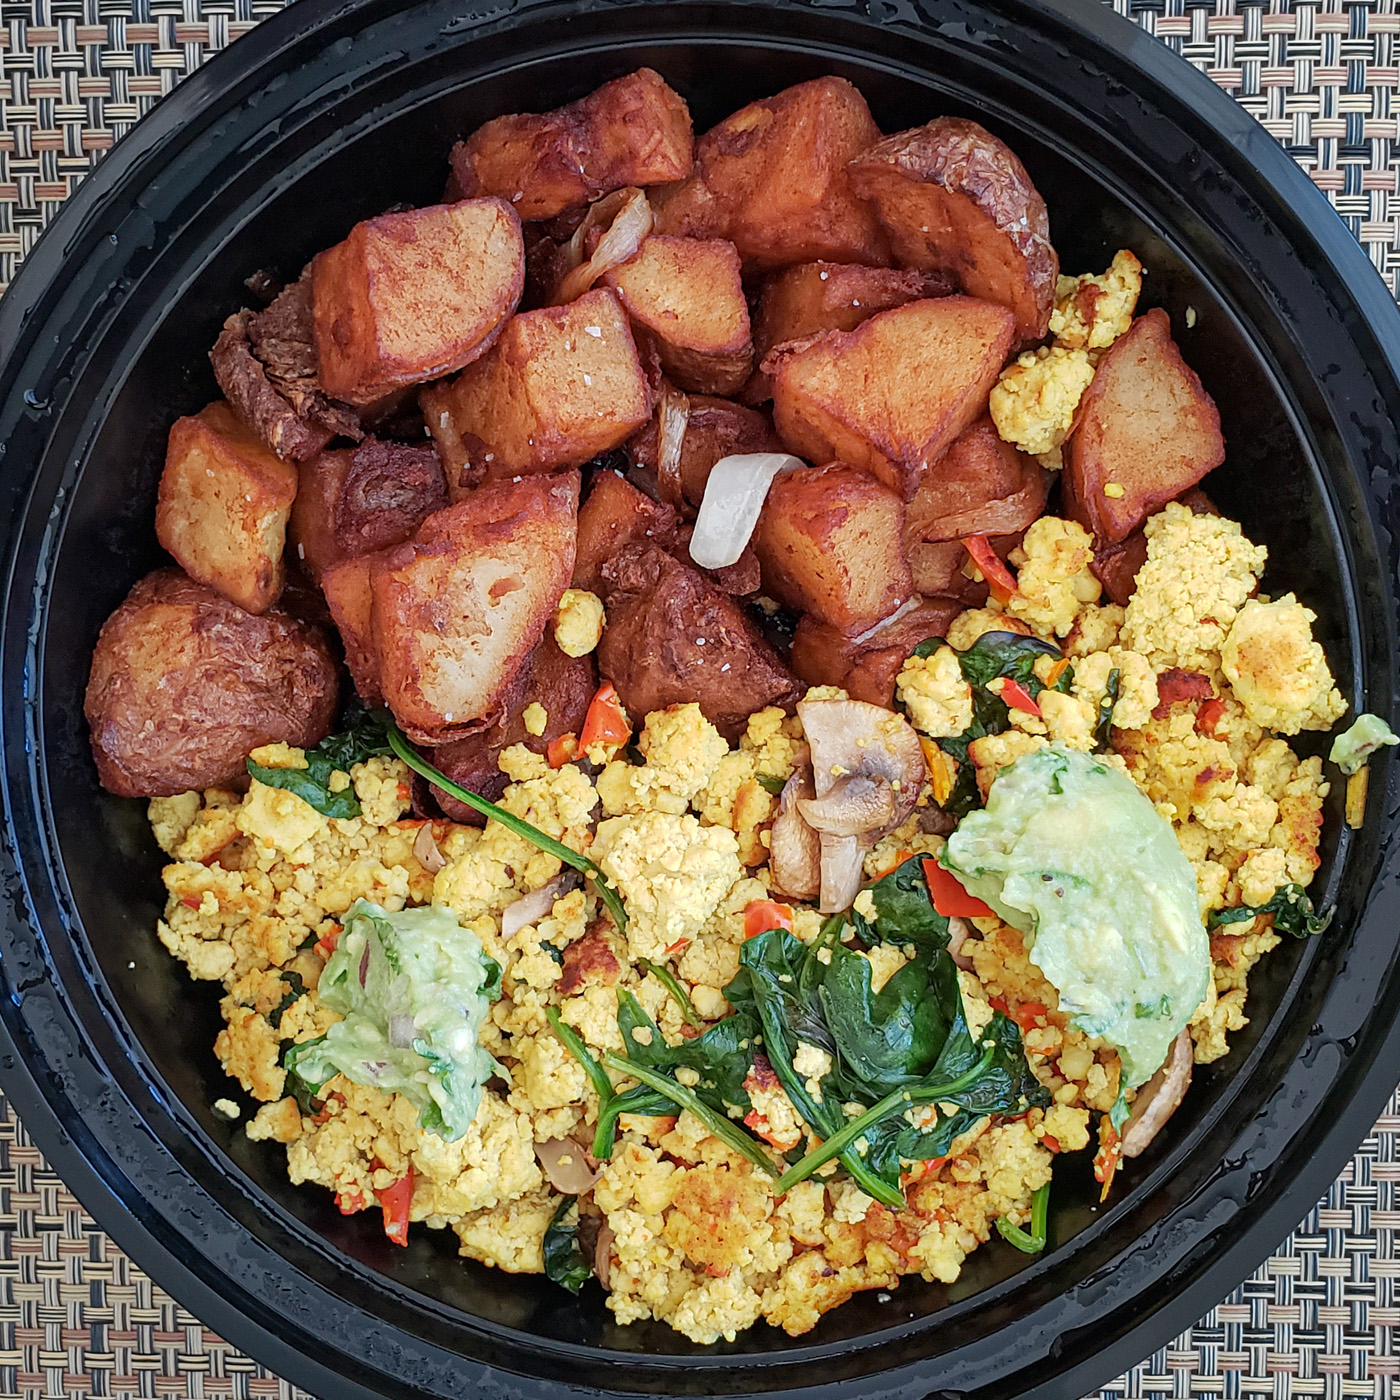 Tofu Scramble from Sabrinas Cafe